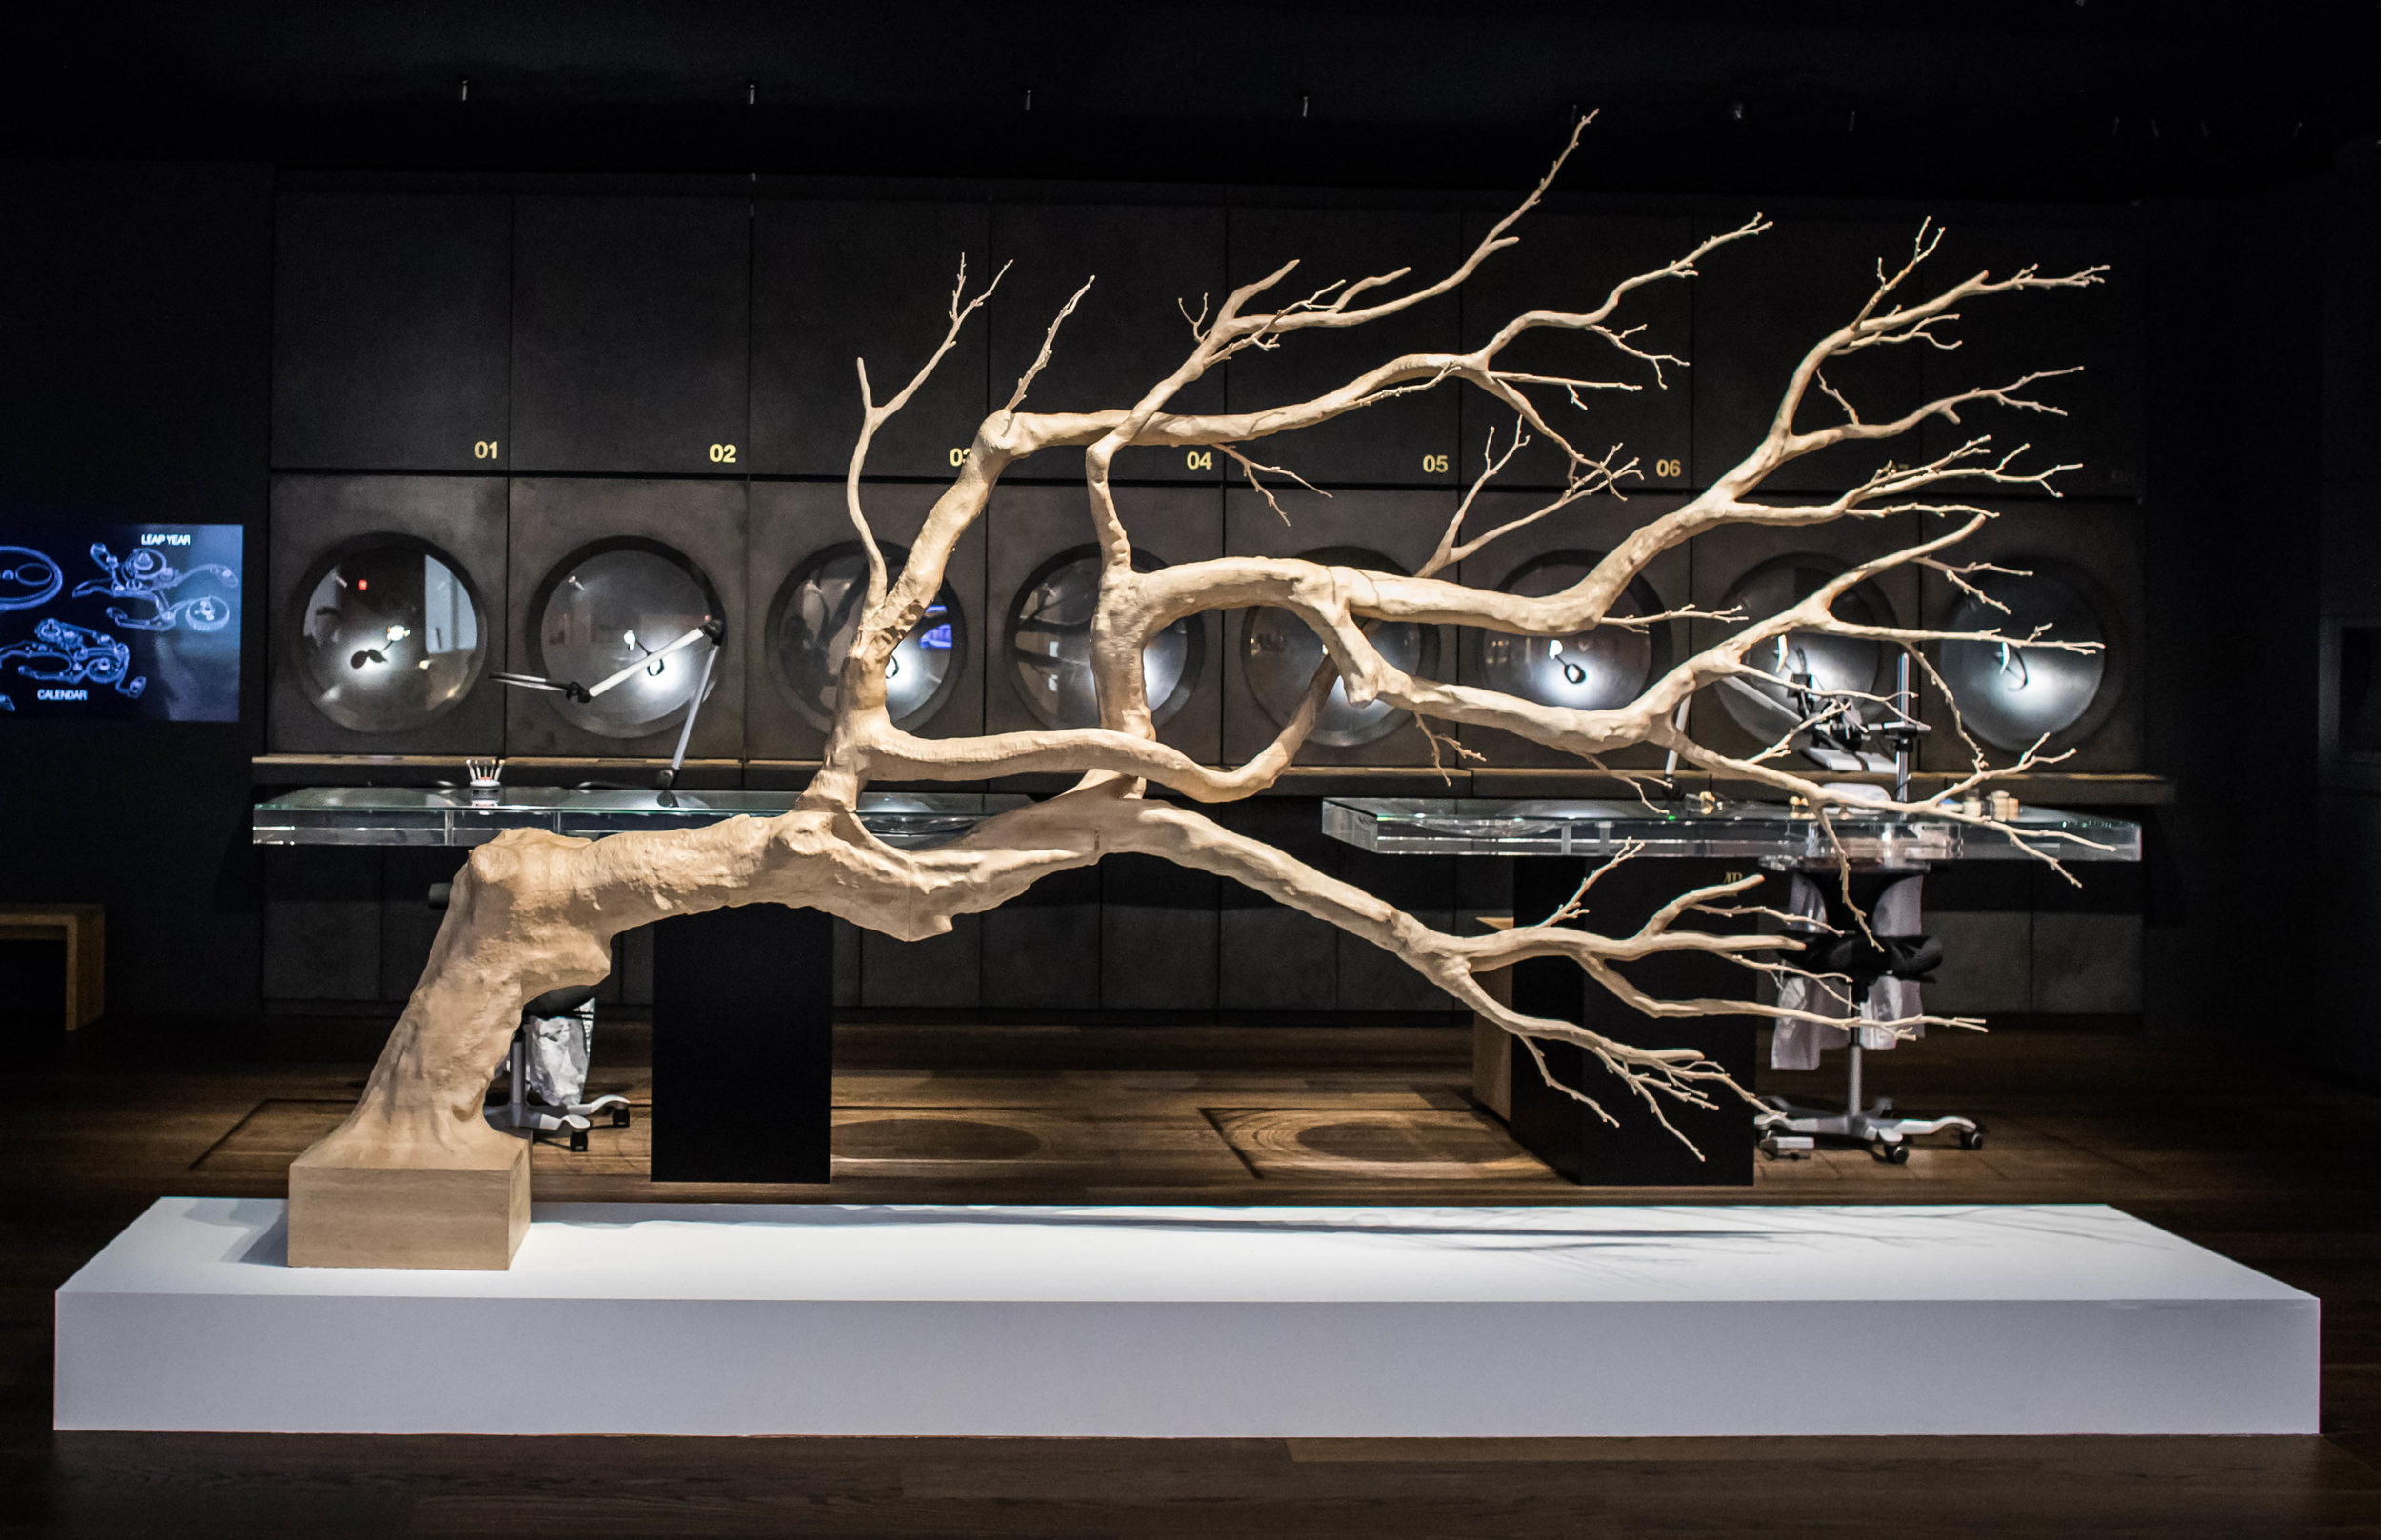 """Art Basel Collector's Lounge for Audemars Piguet (Hong Kong, Basel, Miami), 2017  For the second consecutive year, Sebastian Errazuriz was invited to design Audemars Piguet's vip lounge at Art Basel, Hong Kong and Miami. The new installation will be launched at Art Basel Hong Kong on March, 23 rd 2017 and on view during the entire fair.  The new design is inspired by the vast forests in the Jura Mountains, reminding us of the Manufacture's deep sense of history and endless growth. """"During my visit to le Brassus in 2015, I was captivated by the trees that are native to the region of the Vallée de Joux. It seemed as though they drew a natural symbolic connection to Audemars Piguet.""""  The spruce trees that grow near the Manufacture usually look tall and straight, from the trunk all the way to the end of the branches. For the lounge, Sebastian Errazuriz created a tree that had meaning and was not like the others, a tree that was unique in its shape and identity."""